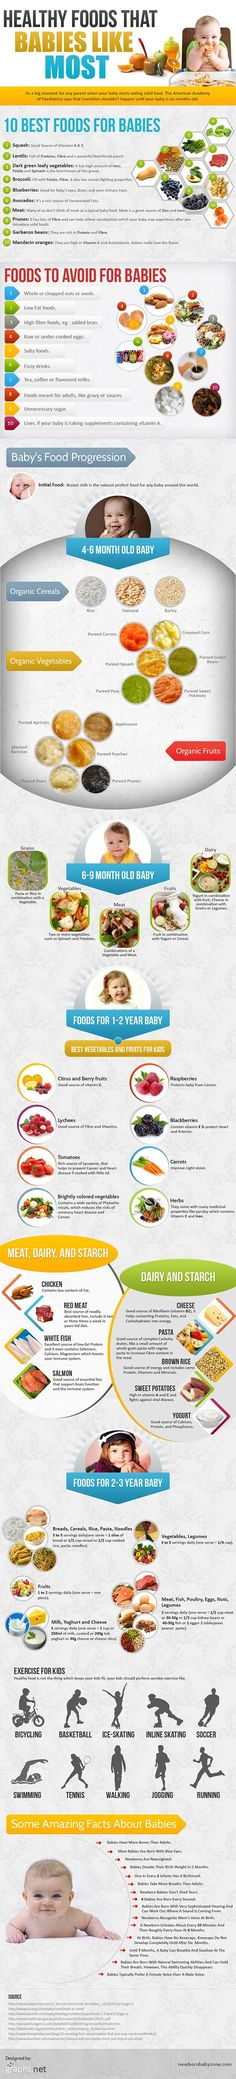 Healthy Foods That Babies Like Most.  Ps. Please don't take me posting this as me having babies anytime soon.